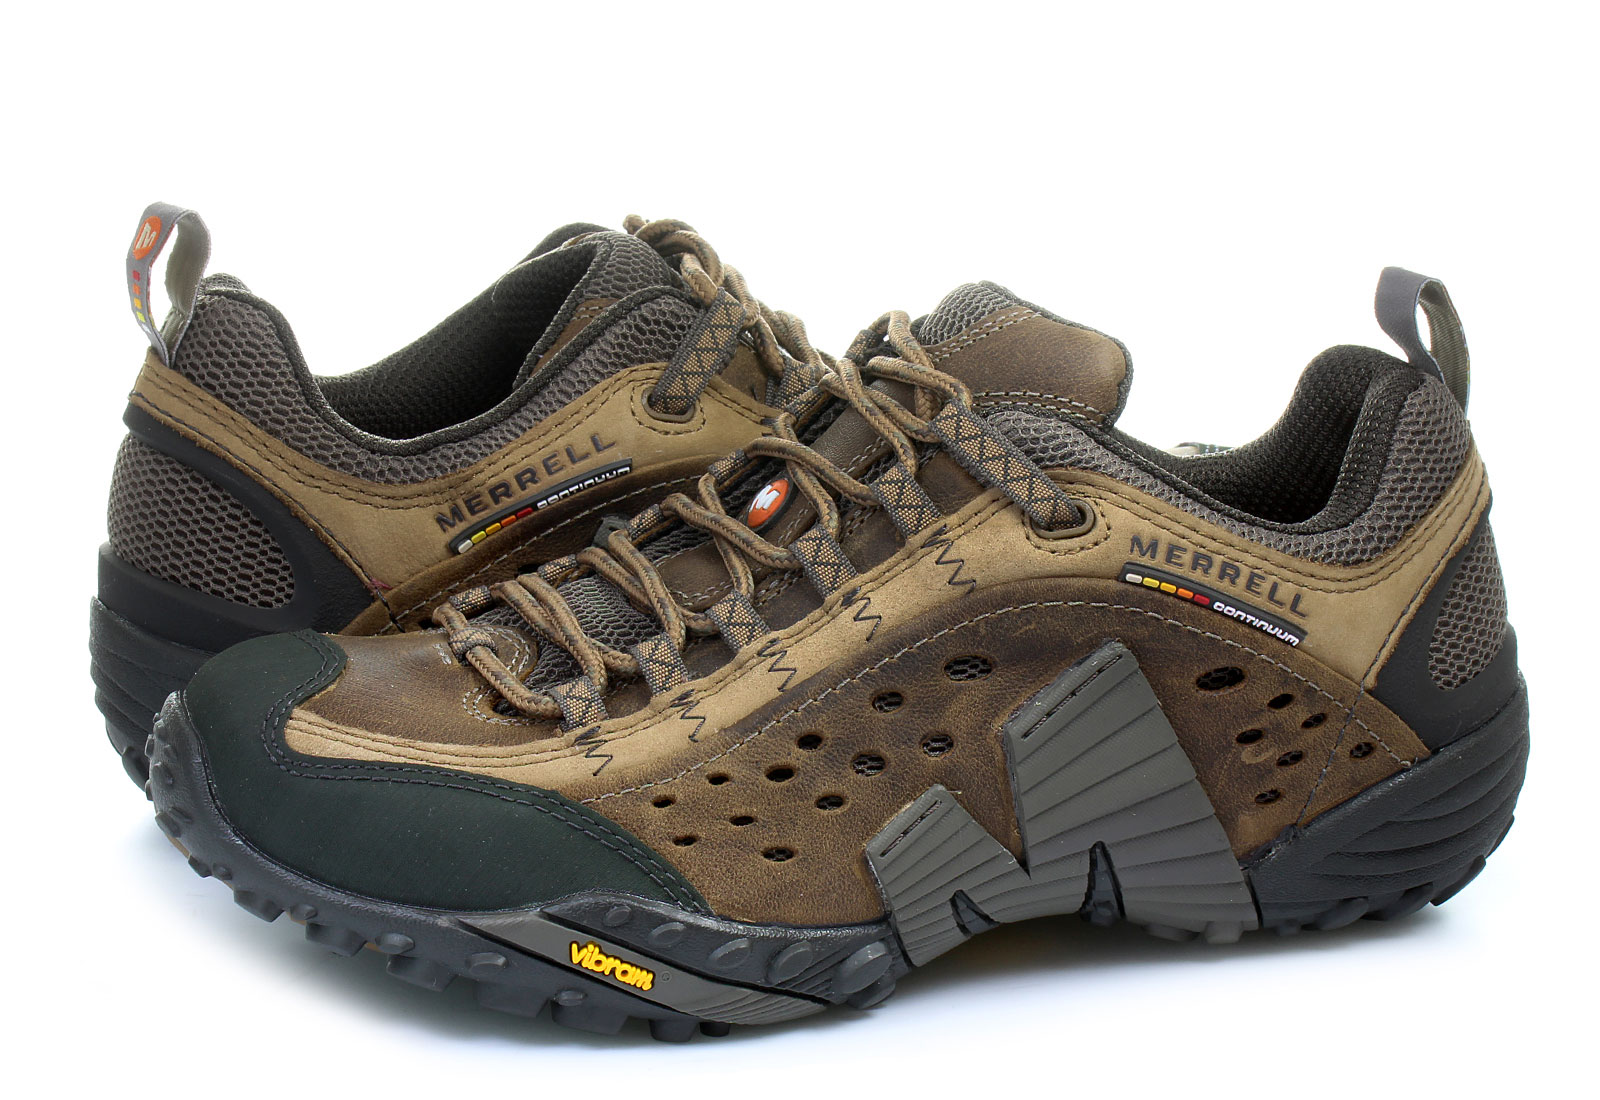 May 10,  · Merrell began as a hiking boot manufacturer back in , and has grown to include high performance shoes of many styles for men and women. Using the latest technology, these shoes have gradually become lighter, more durable, and suitable for a greater variety of outdoor activities.